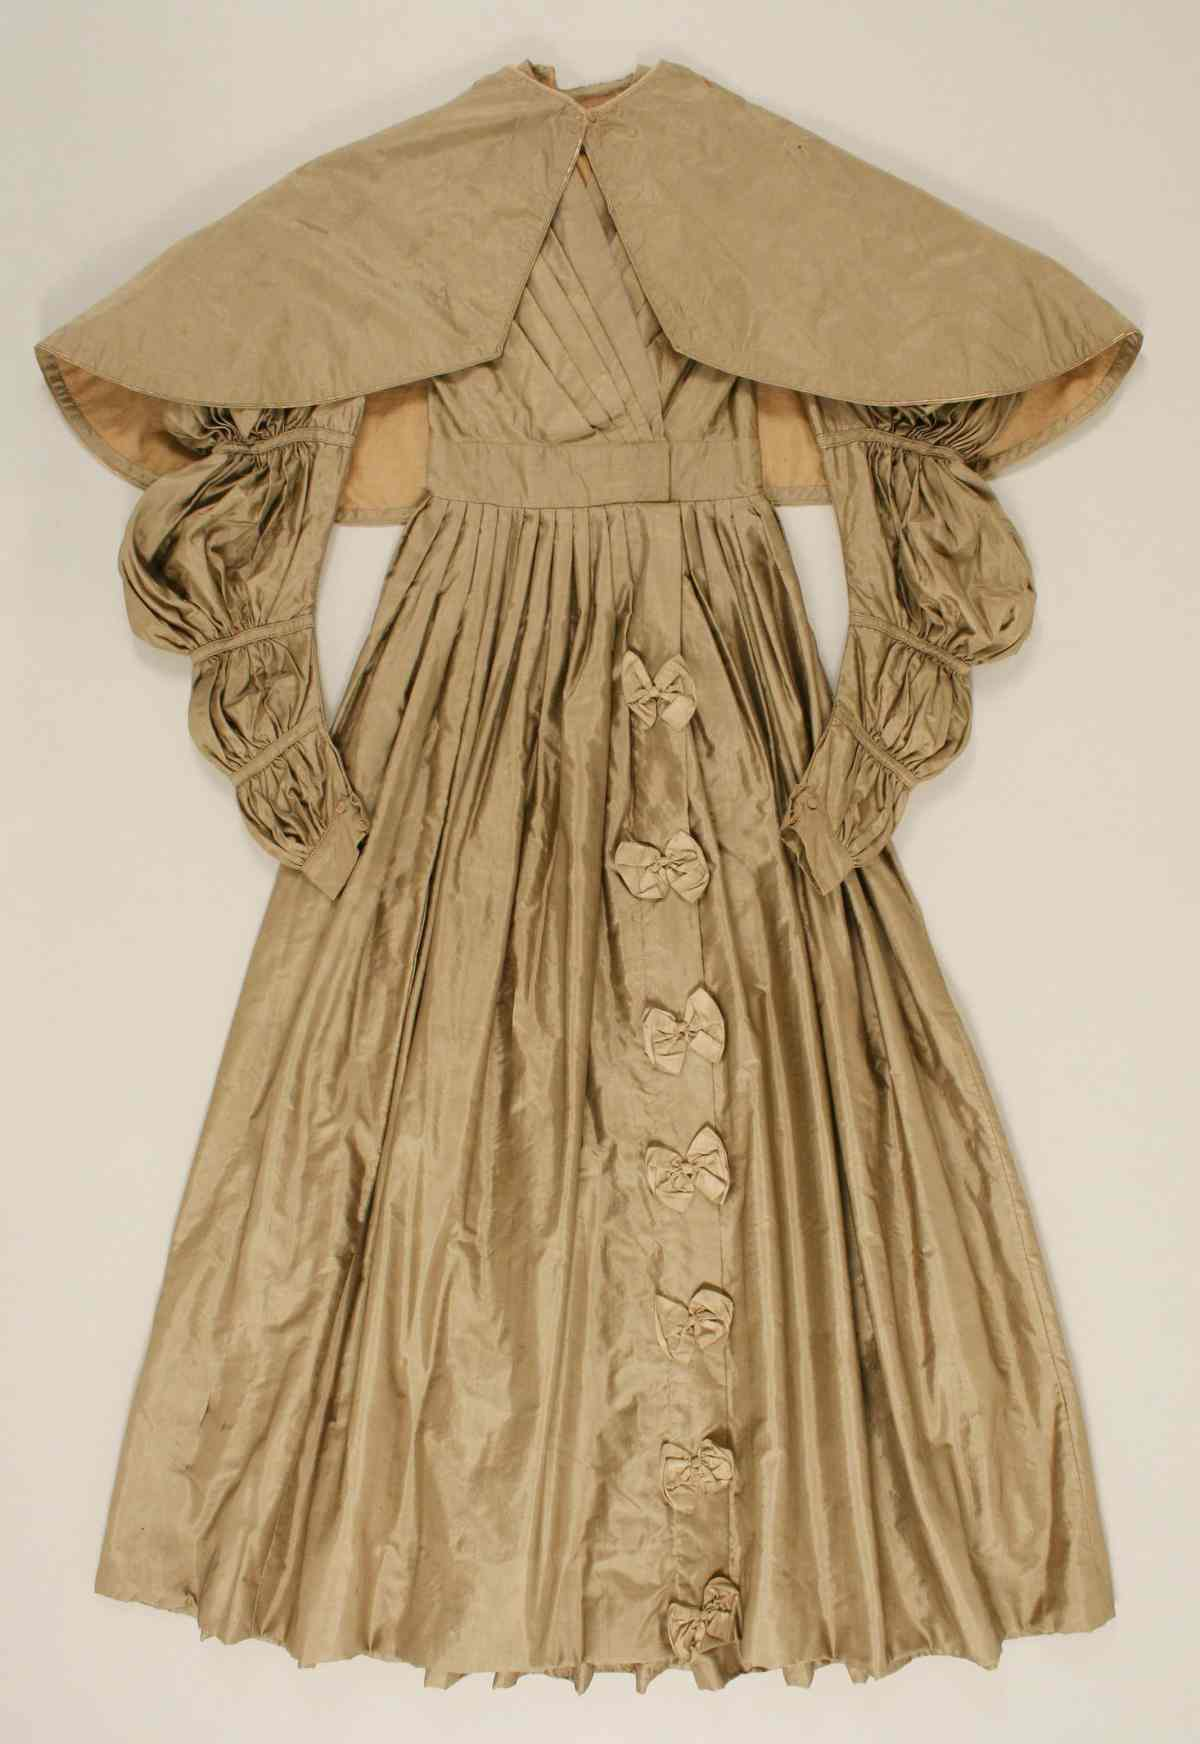 American dress with puff sleeves, pelerine, wide skirt and bows